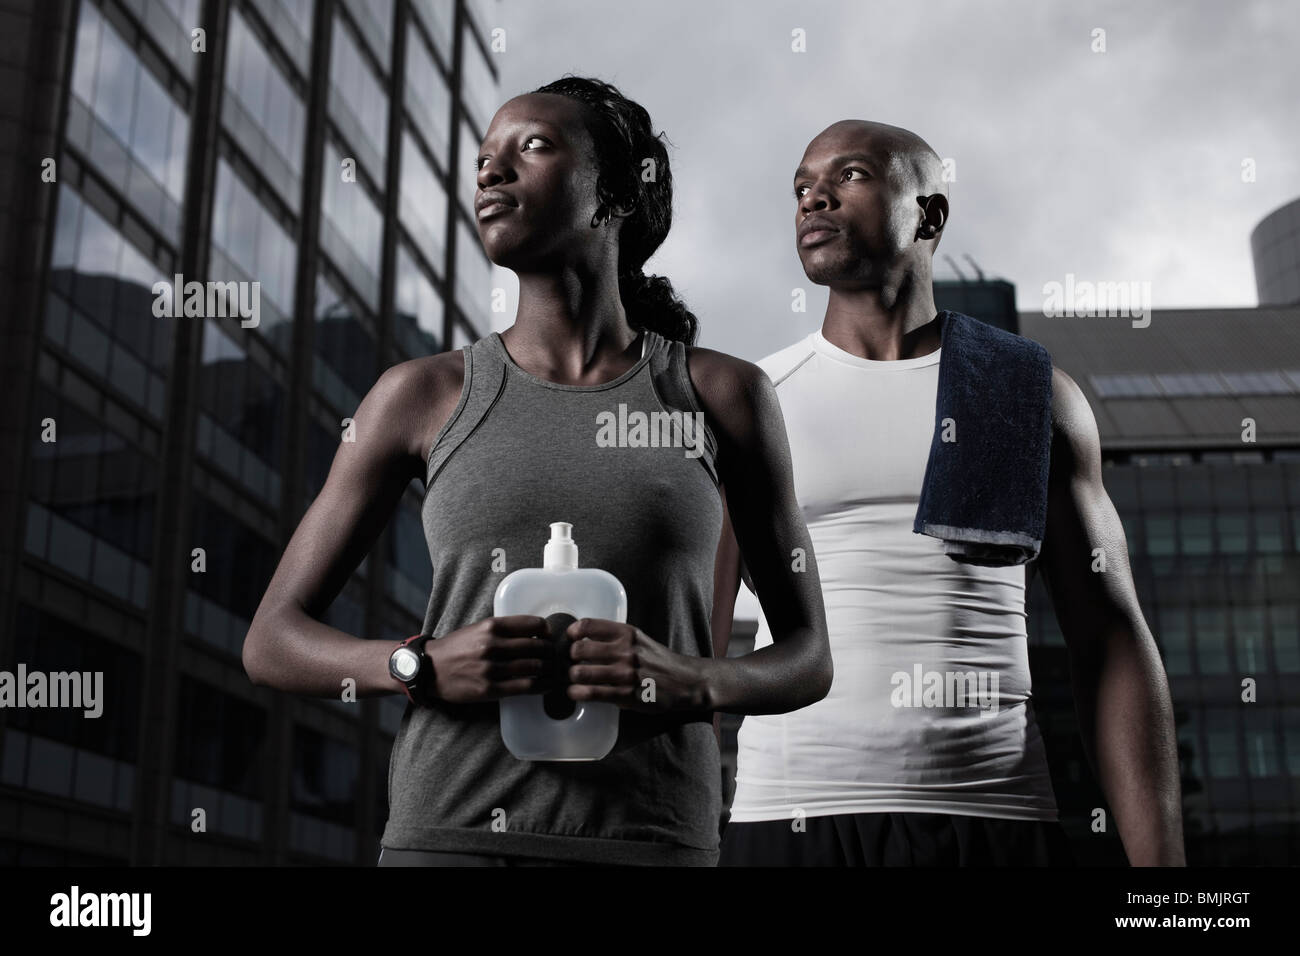 Athletic man and woman dressed in sportswear backgrounded by modern city buildings - Stock Image